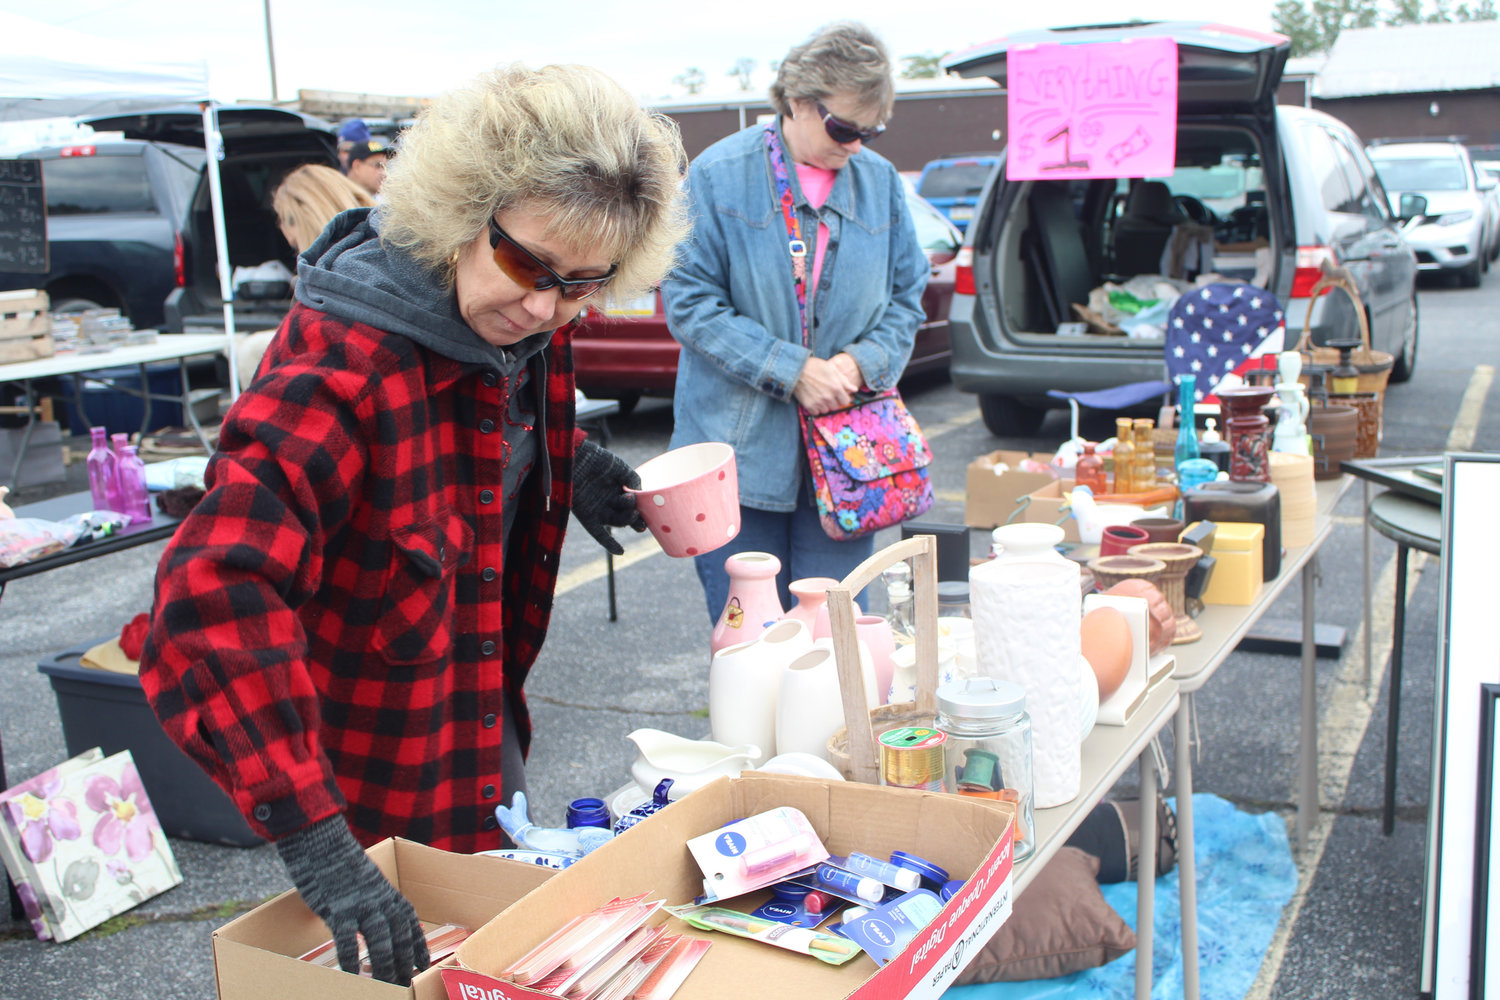 Kathy Ortega sorts through items in her stall at Saturday's Martket Oct. 12.